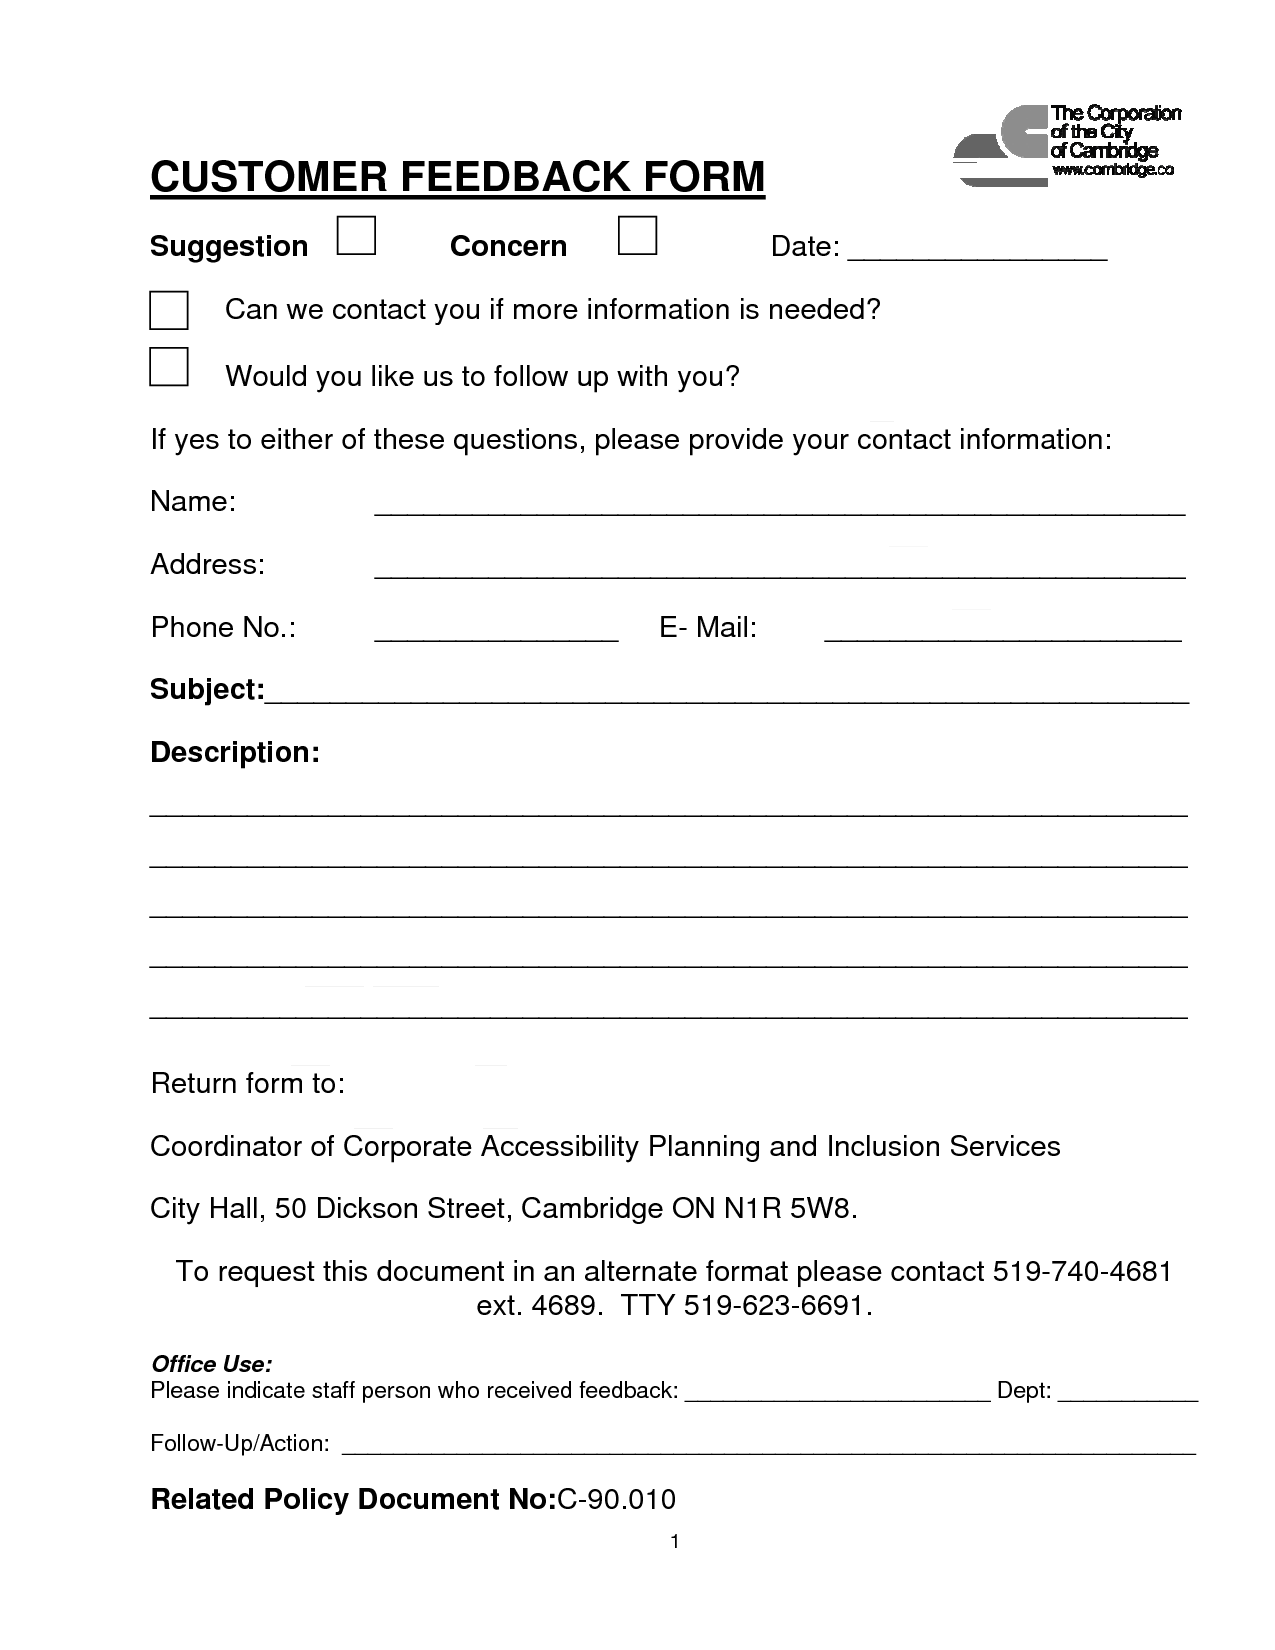 Customer contact form customer feedback form pdf for Design of household surveys